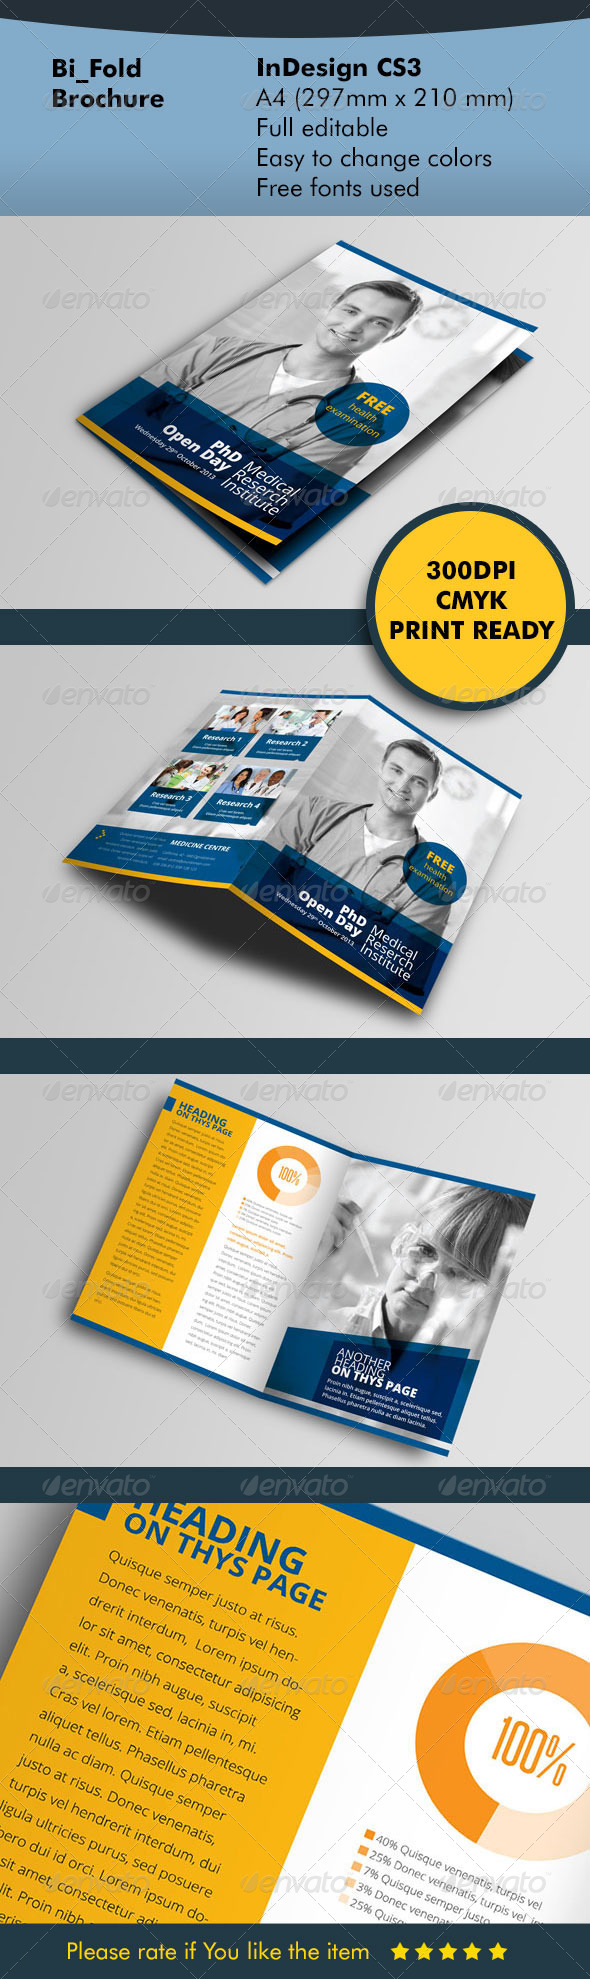 Indesign-indd,yes,cs4,210x297,a4,ad,bi,bi-fold,brochure,capital,city,design,fold,foreign,graphic,half,halffold